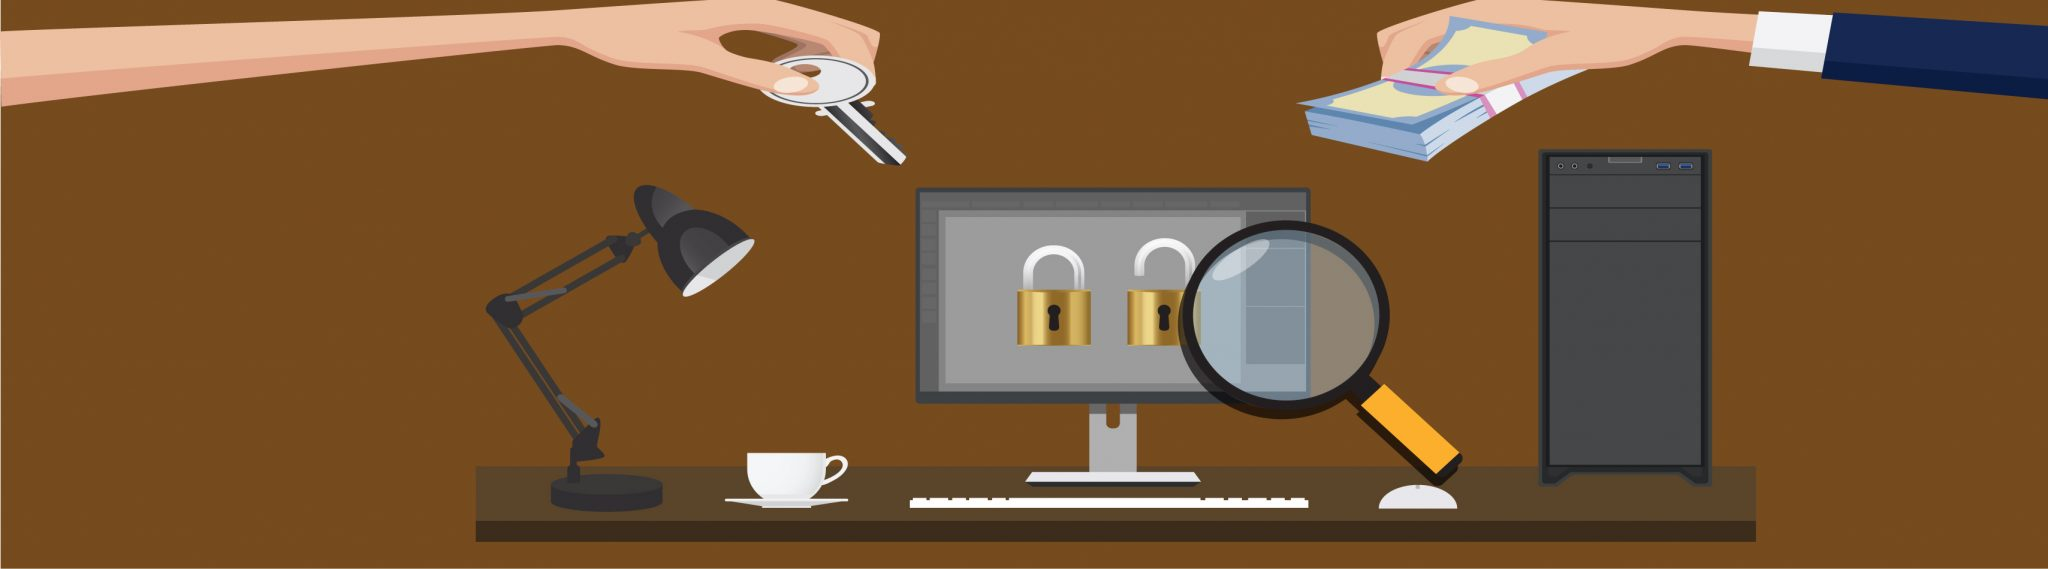 Don't know how ransomware spreads? Get ready to become the